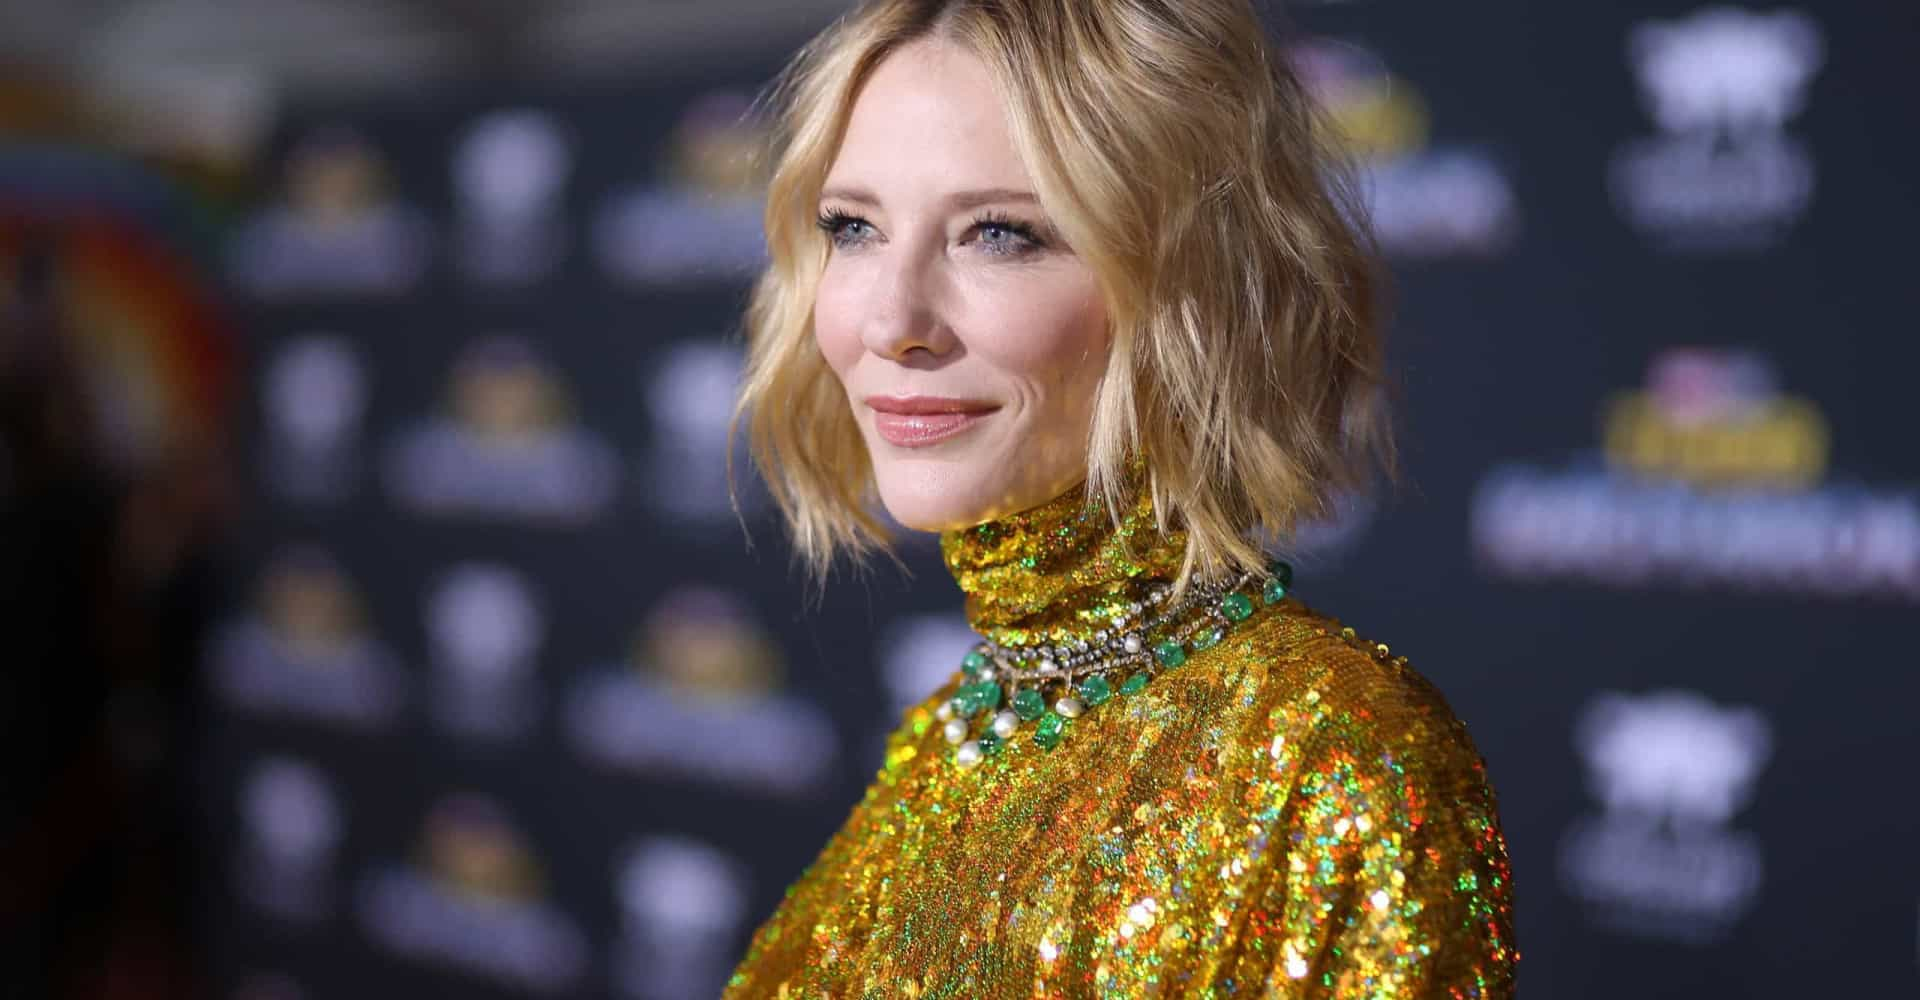 Cate Blanchett: Fierce, fifty, and a force to be reckoned with